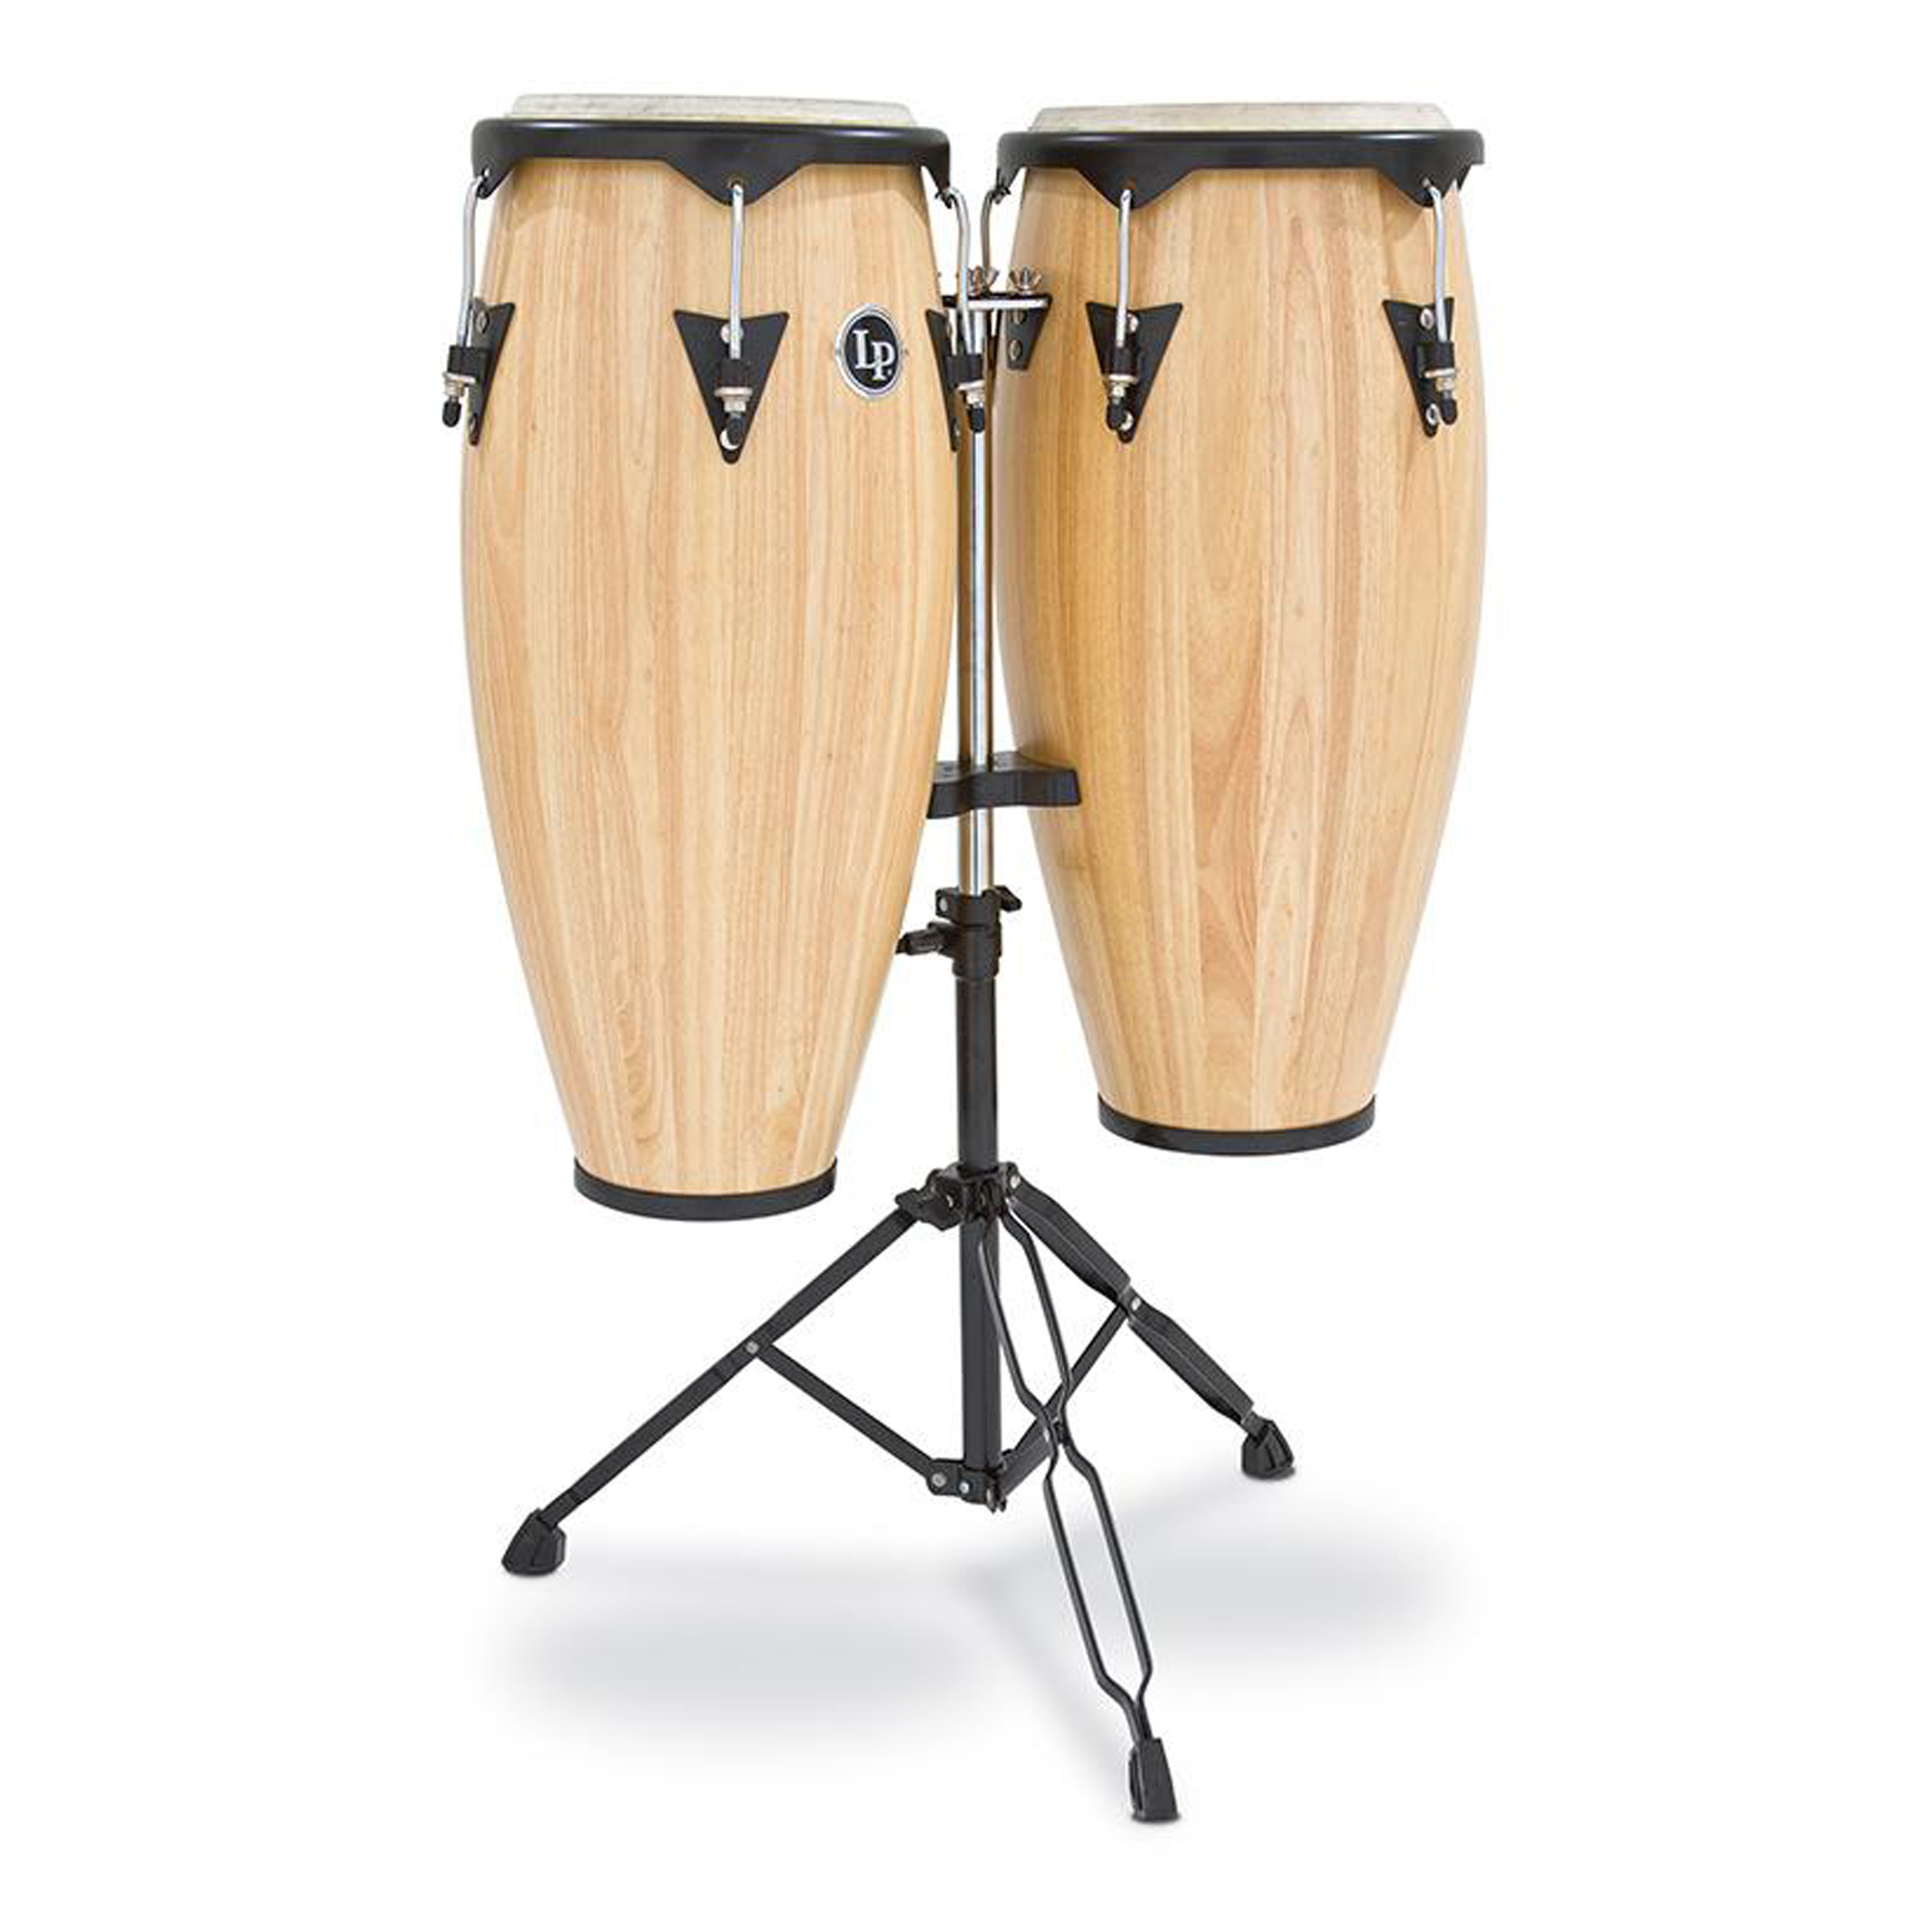 LATIN PERCUSSION LP City Wood Congaset 10-11 Natural LP646 NYAW - 801000